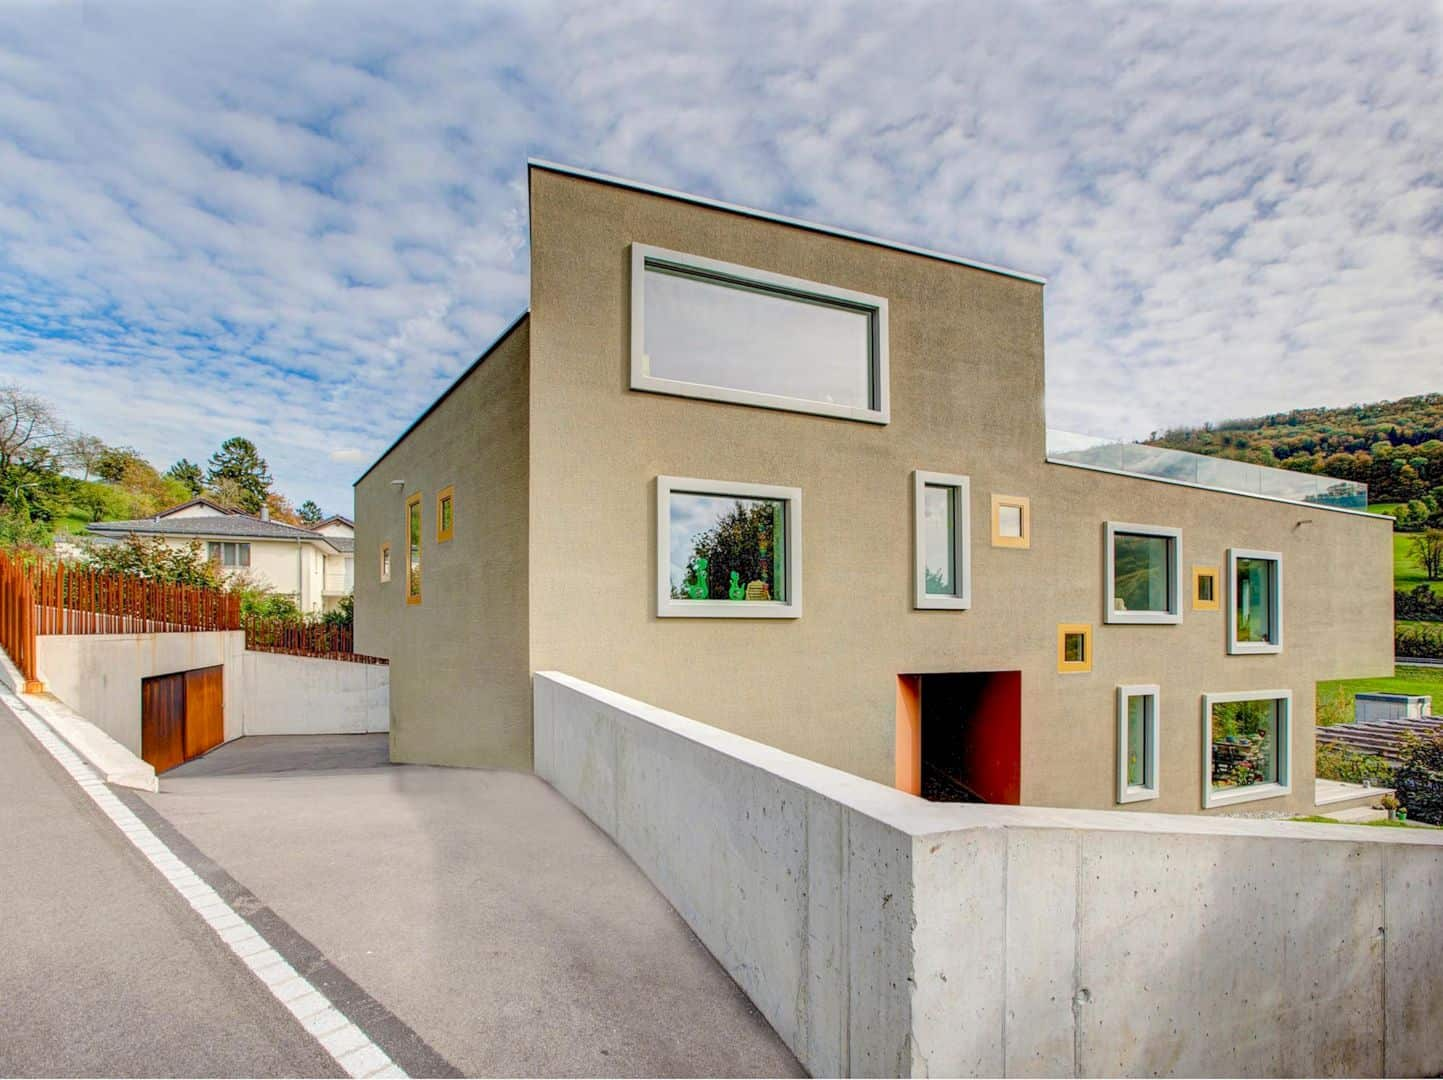 Two Family House By L3P Architects 1